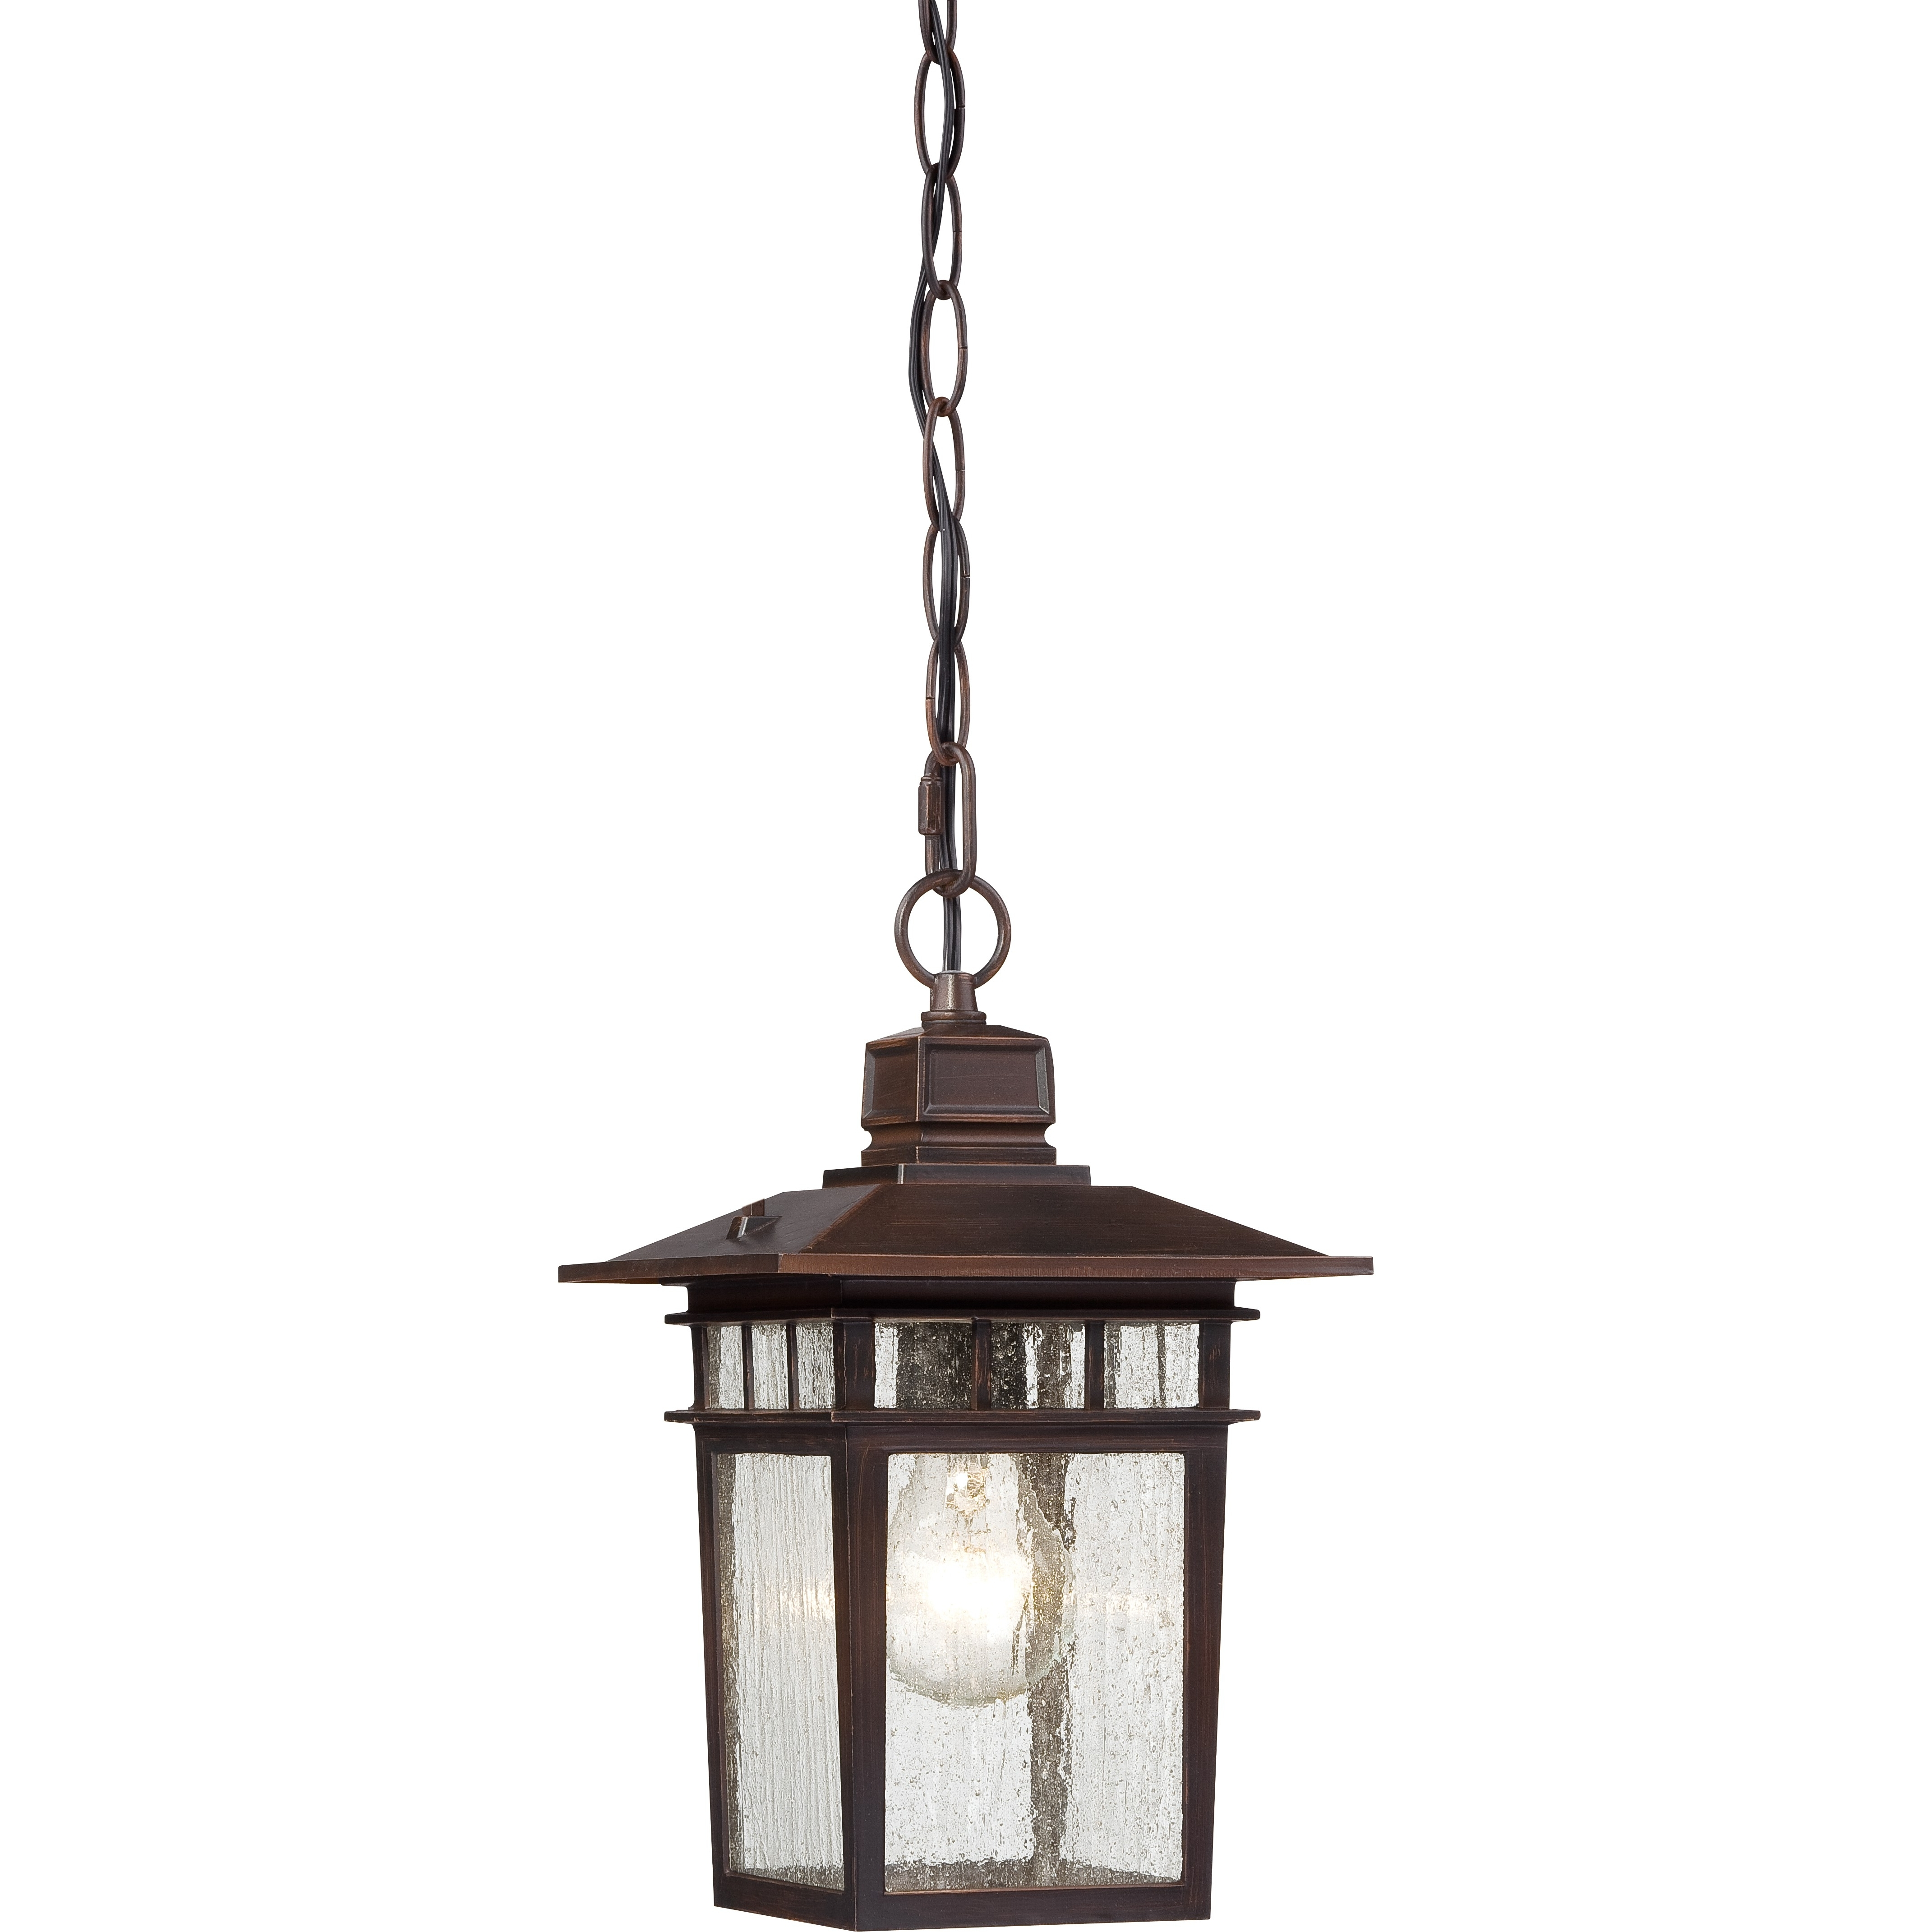 Cove Neck With Rustic Outdoor Hanging Lights (Gallery 17 of 20)